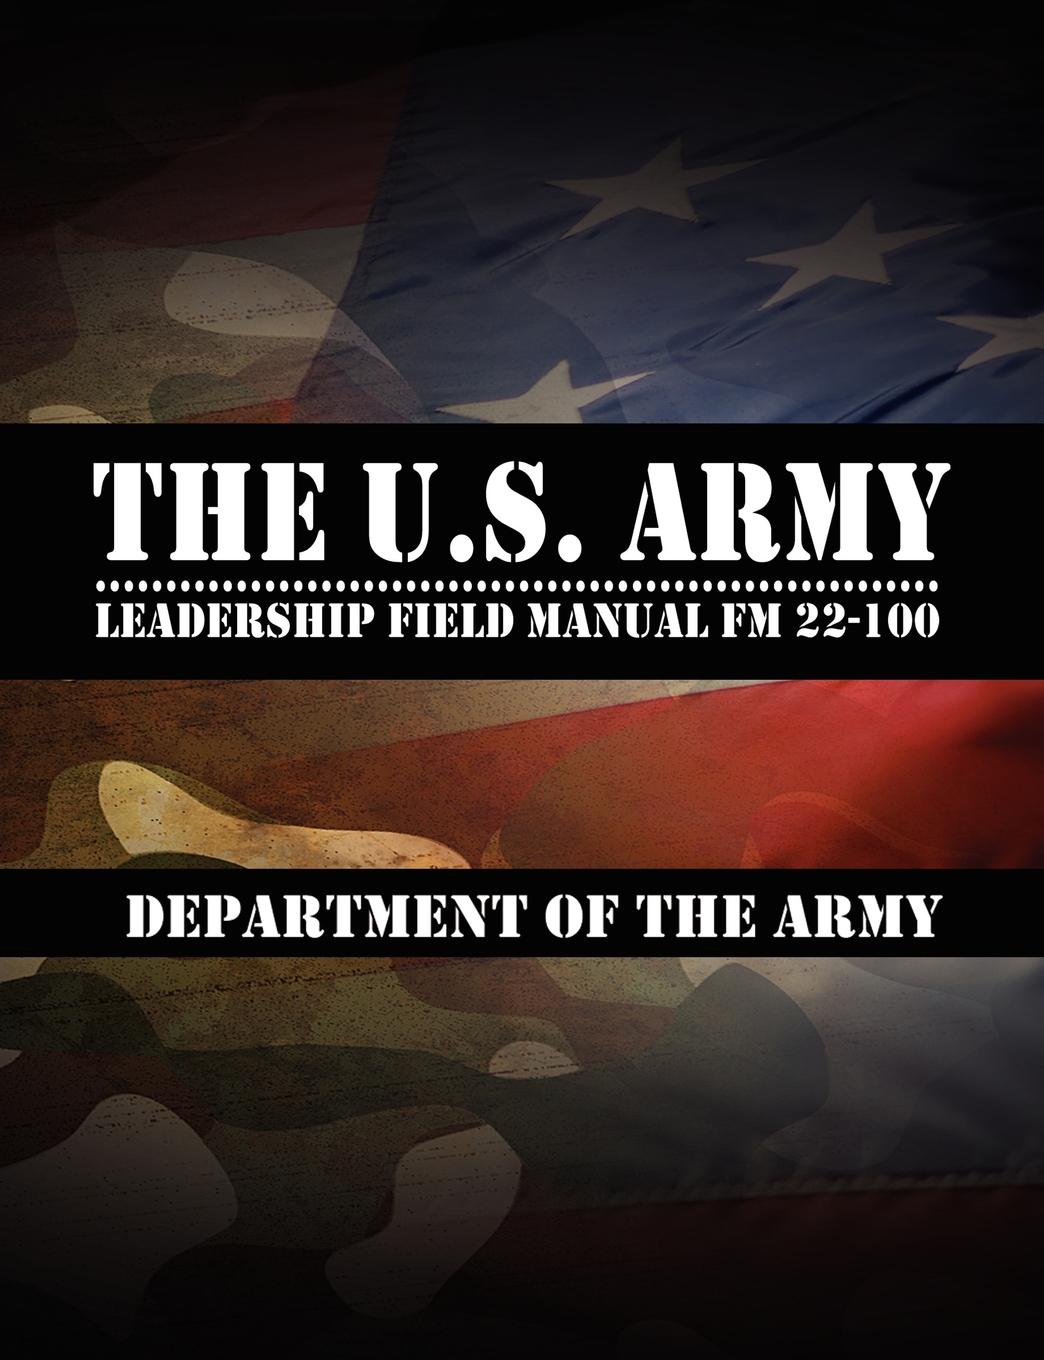 Leadership Center for Army and Us Army The U.S. Army Leadership Field Manual FM 22-100 leadership center for army and us army the u s army leadership field manual fm 22 100